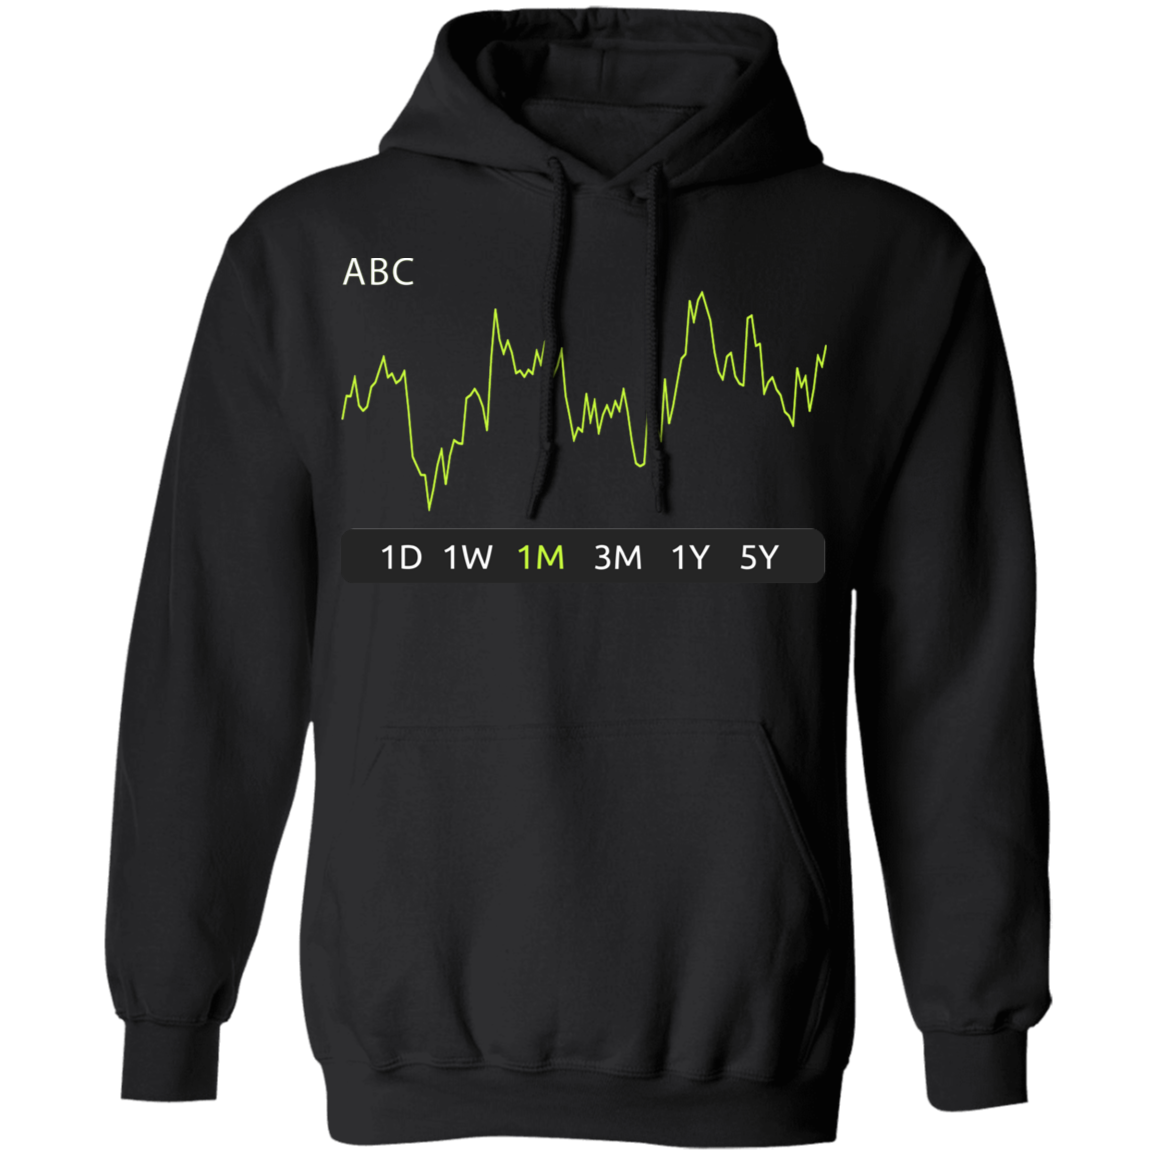 ABC Stock 1m Pullover Hoodie